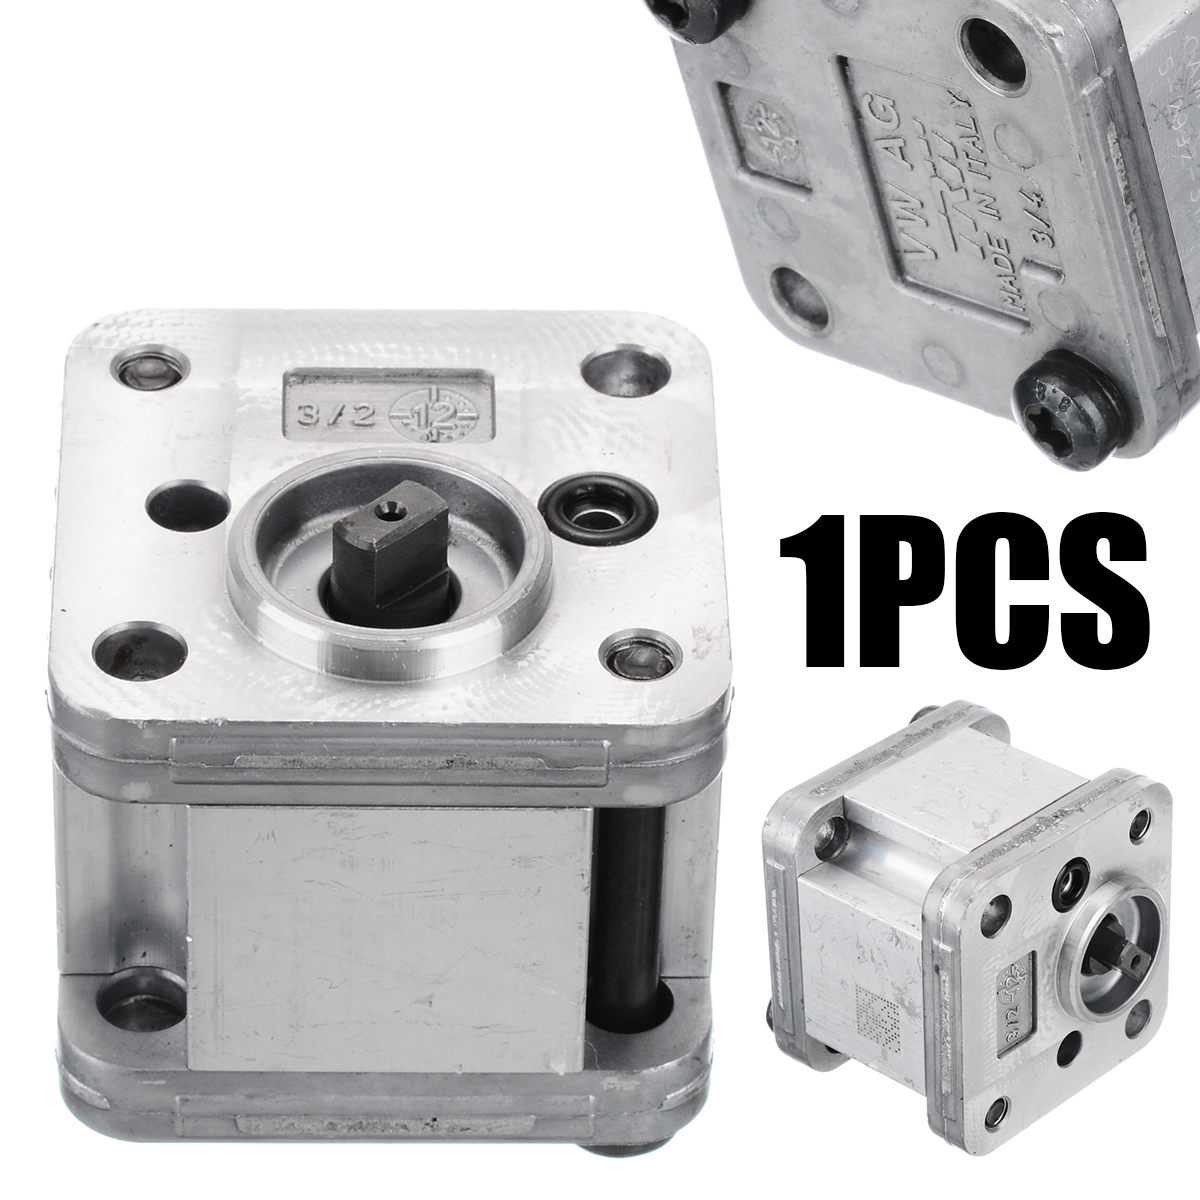 New Hydraulic Gear Pump Metal Gear Pump Hydraulic Model Excavating Machinery For Pumps Parts AccessoriesNew Hydraulic Gear Pump Metal Gear Pump Hydraulic Model Excavating Machinery For Pumps Parts Accessories